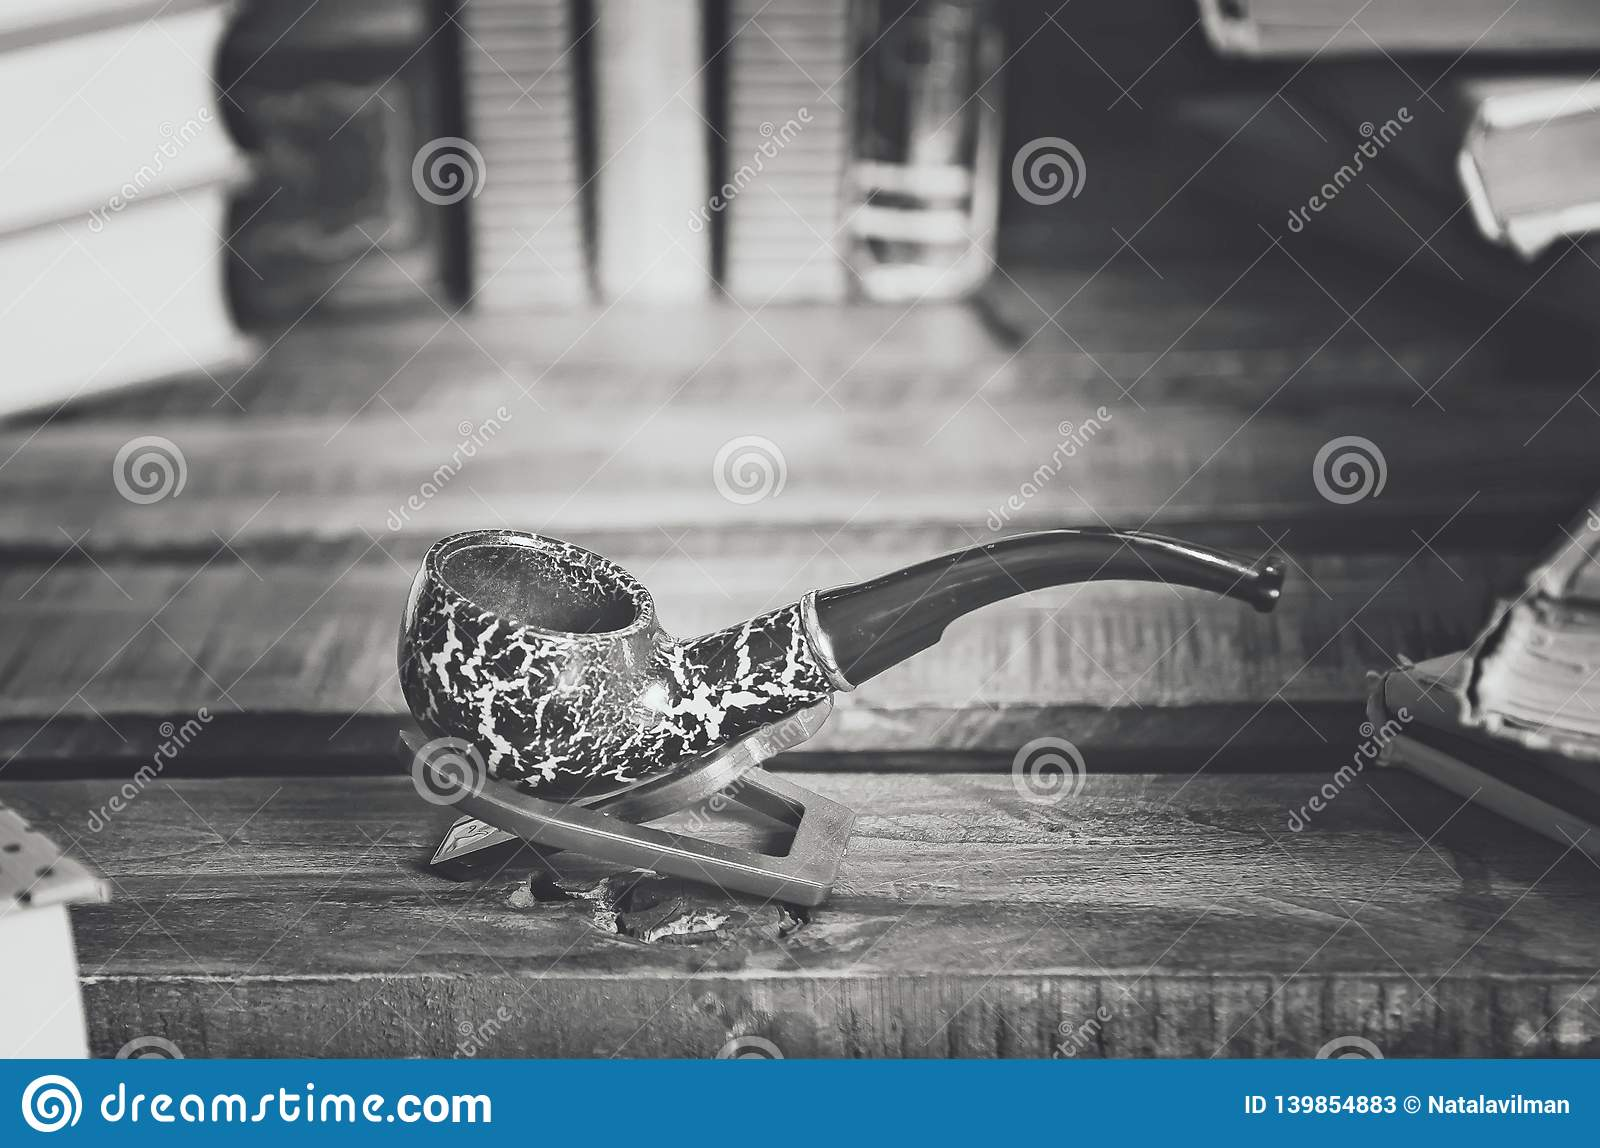 Books and a smoking pipe on a wooden table. Beautiful stylish composition. Вlack and white photography